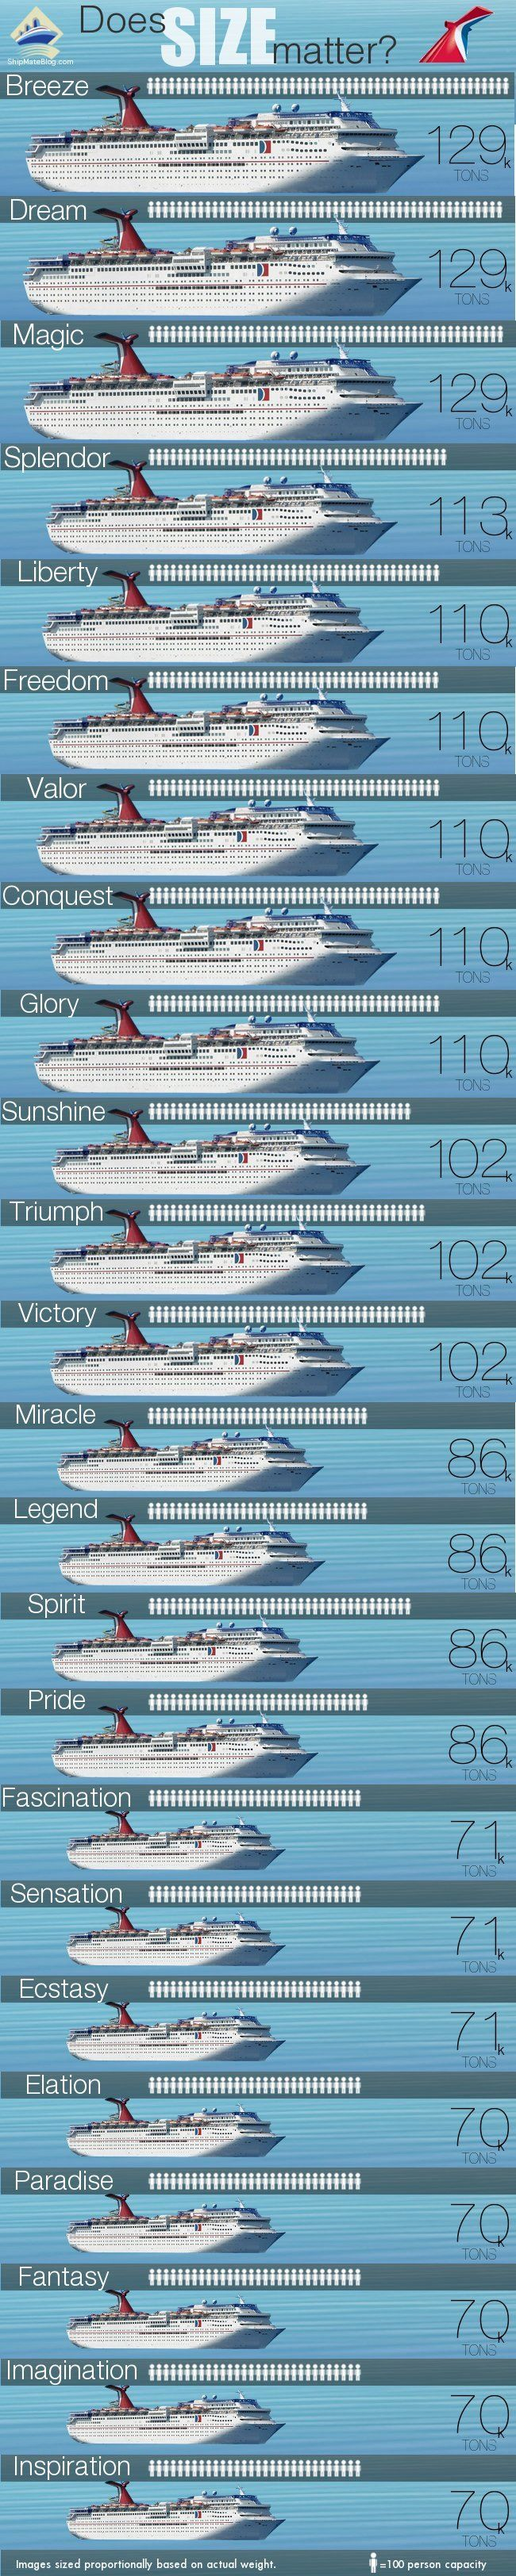 Best Carnival Cruise Triumph Ideas On Pinterest Carnival - Cheapest cruise line